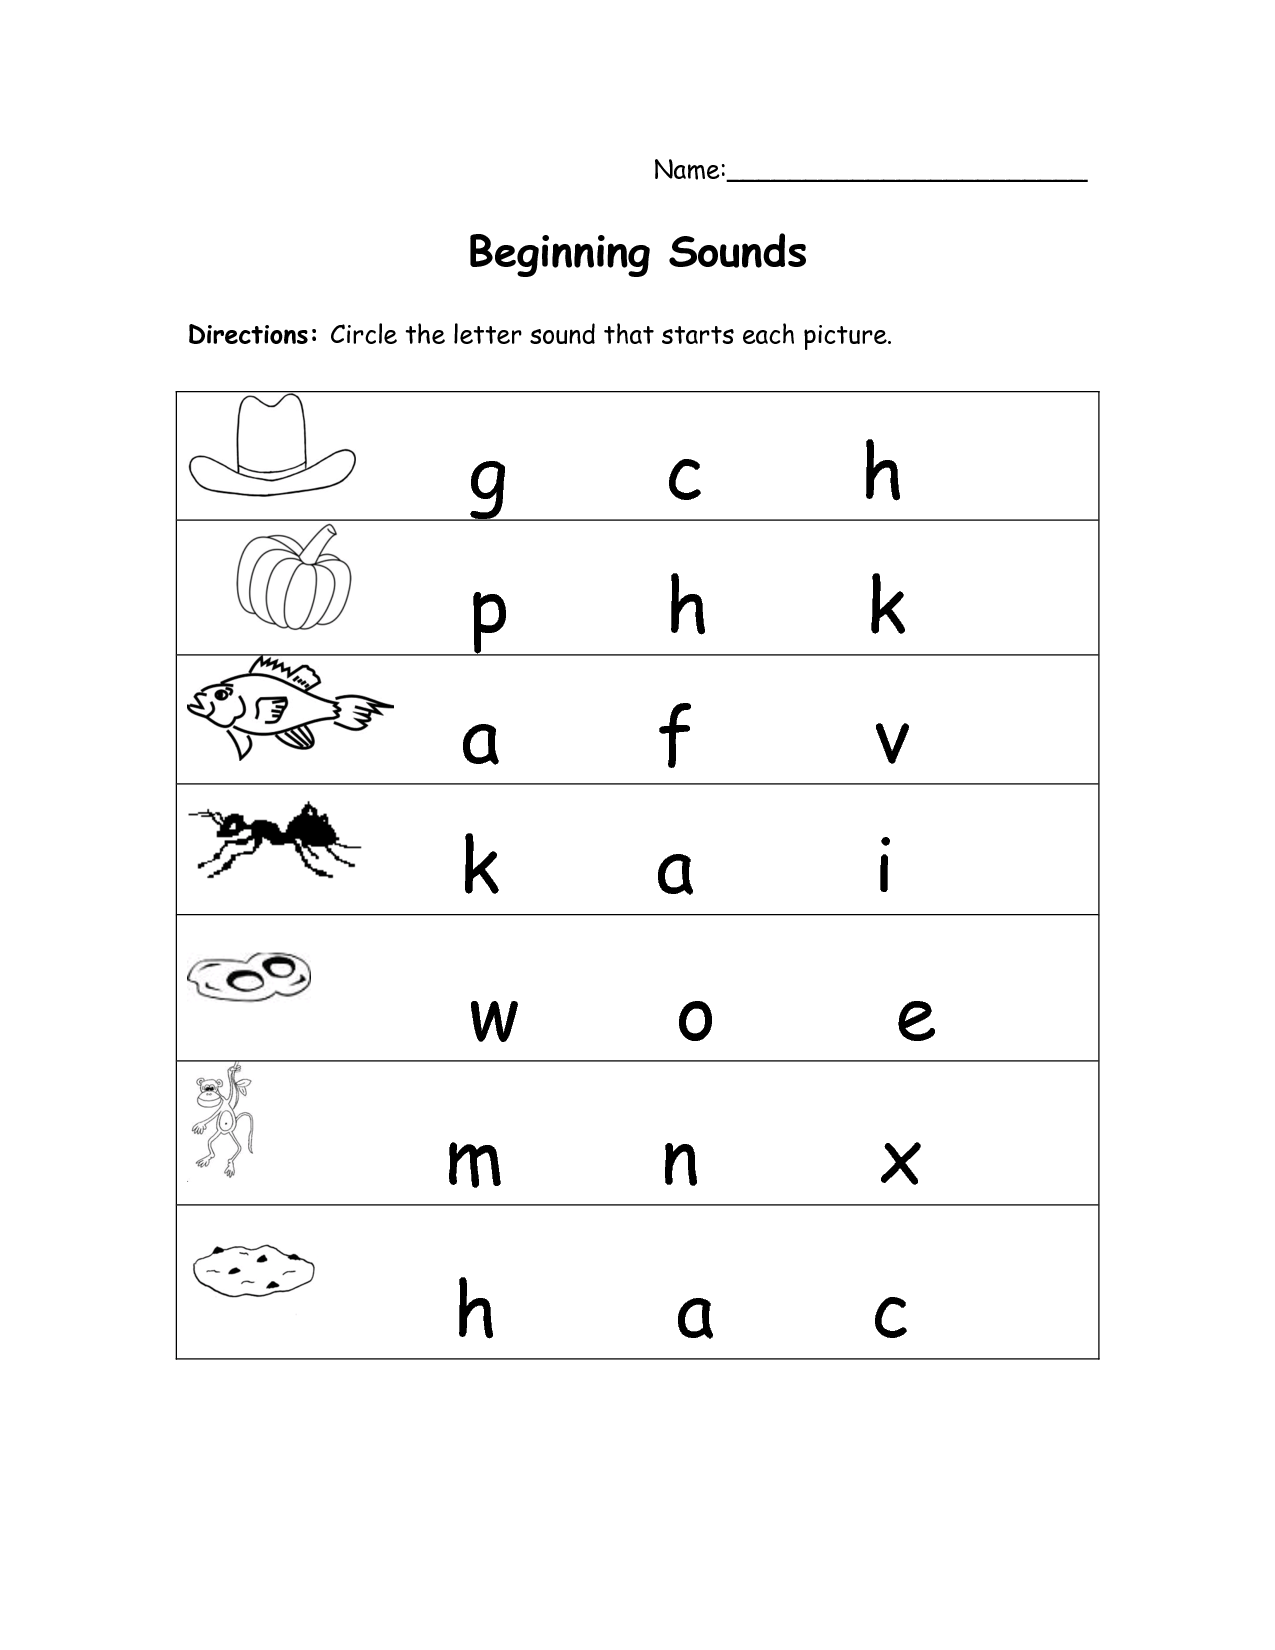 Sound Substitution Worksheet